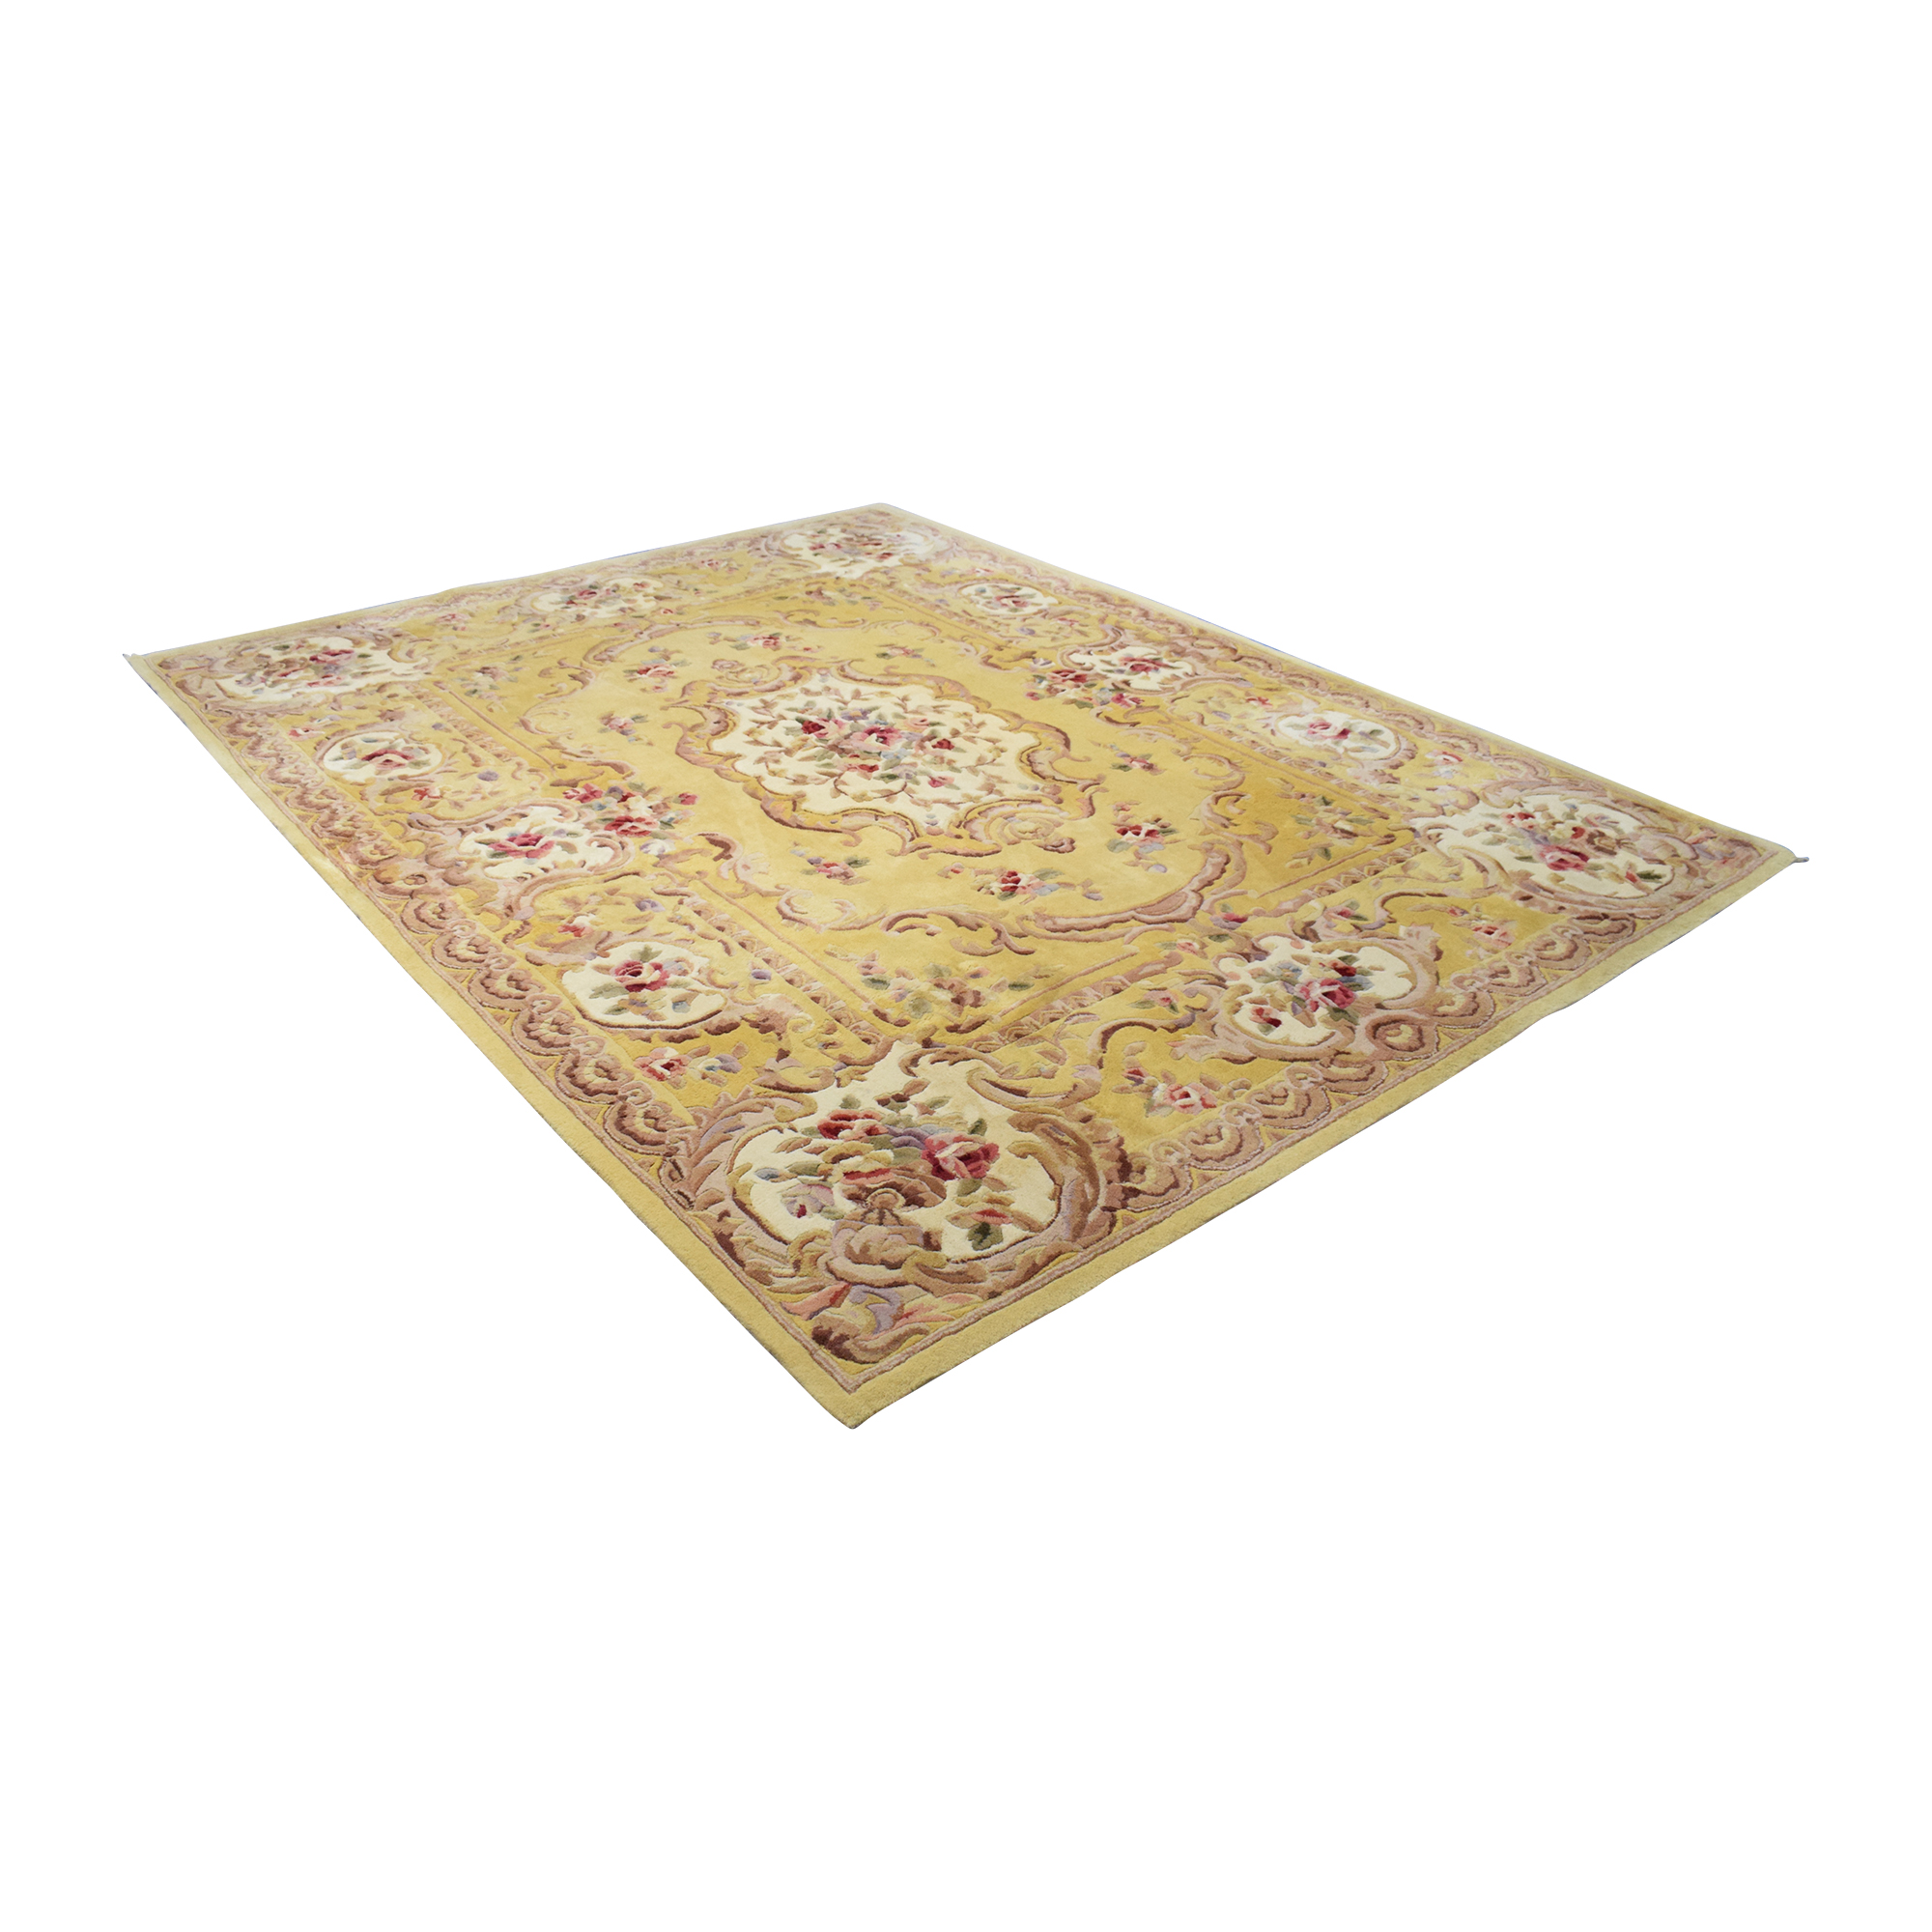 Royal Palace Royal Palace Savonnerie Wool Area Rug multicolor